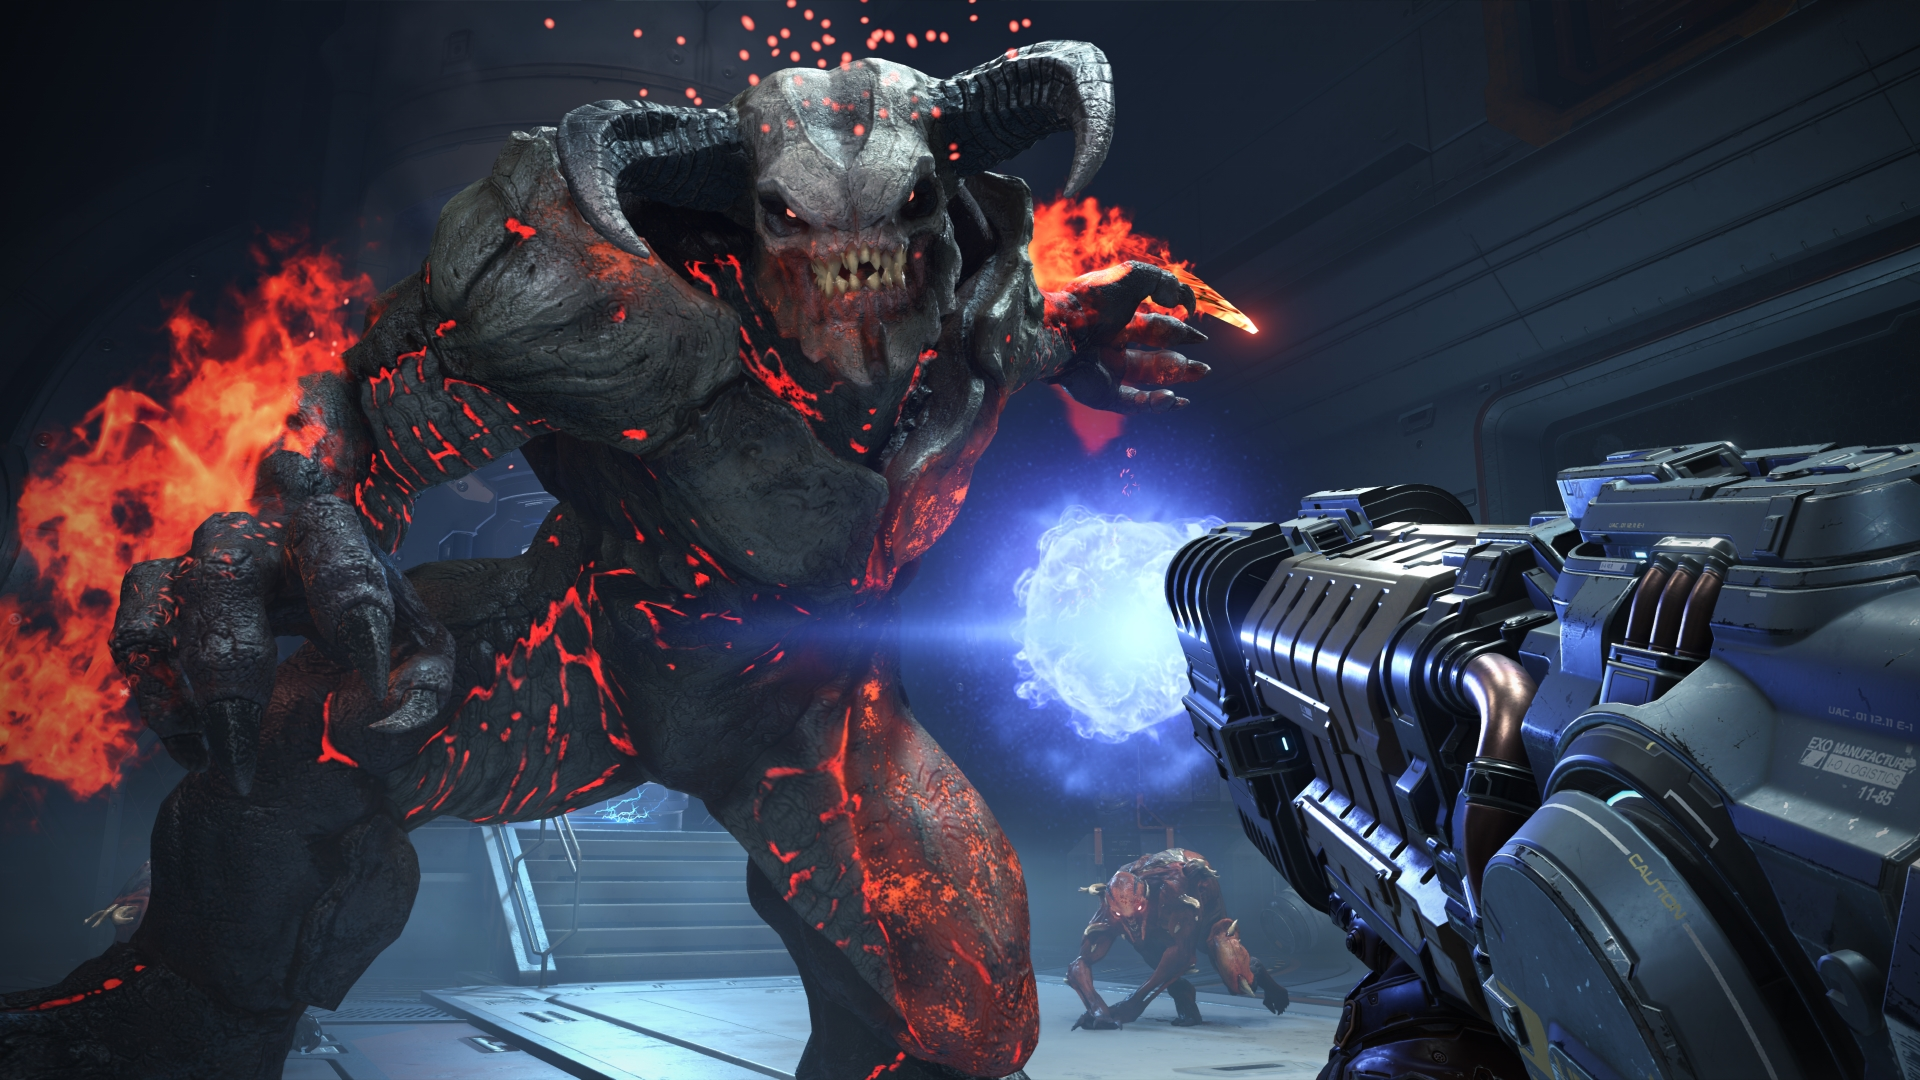 Bethesda confirms E3 2019 conference, will focus on Doom Eternal